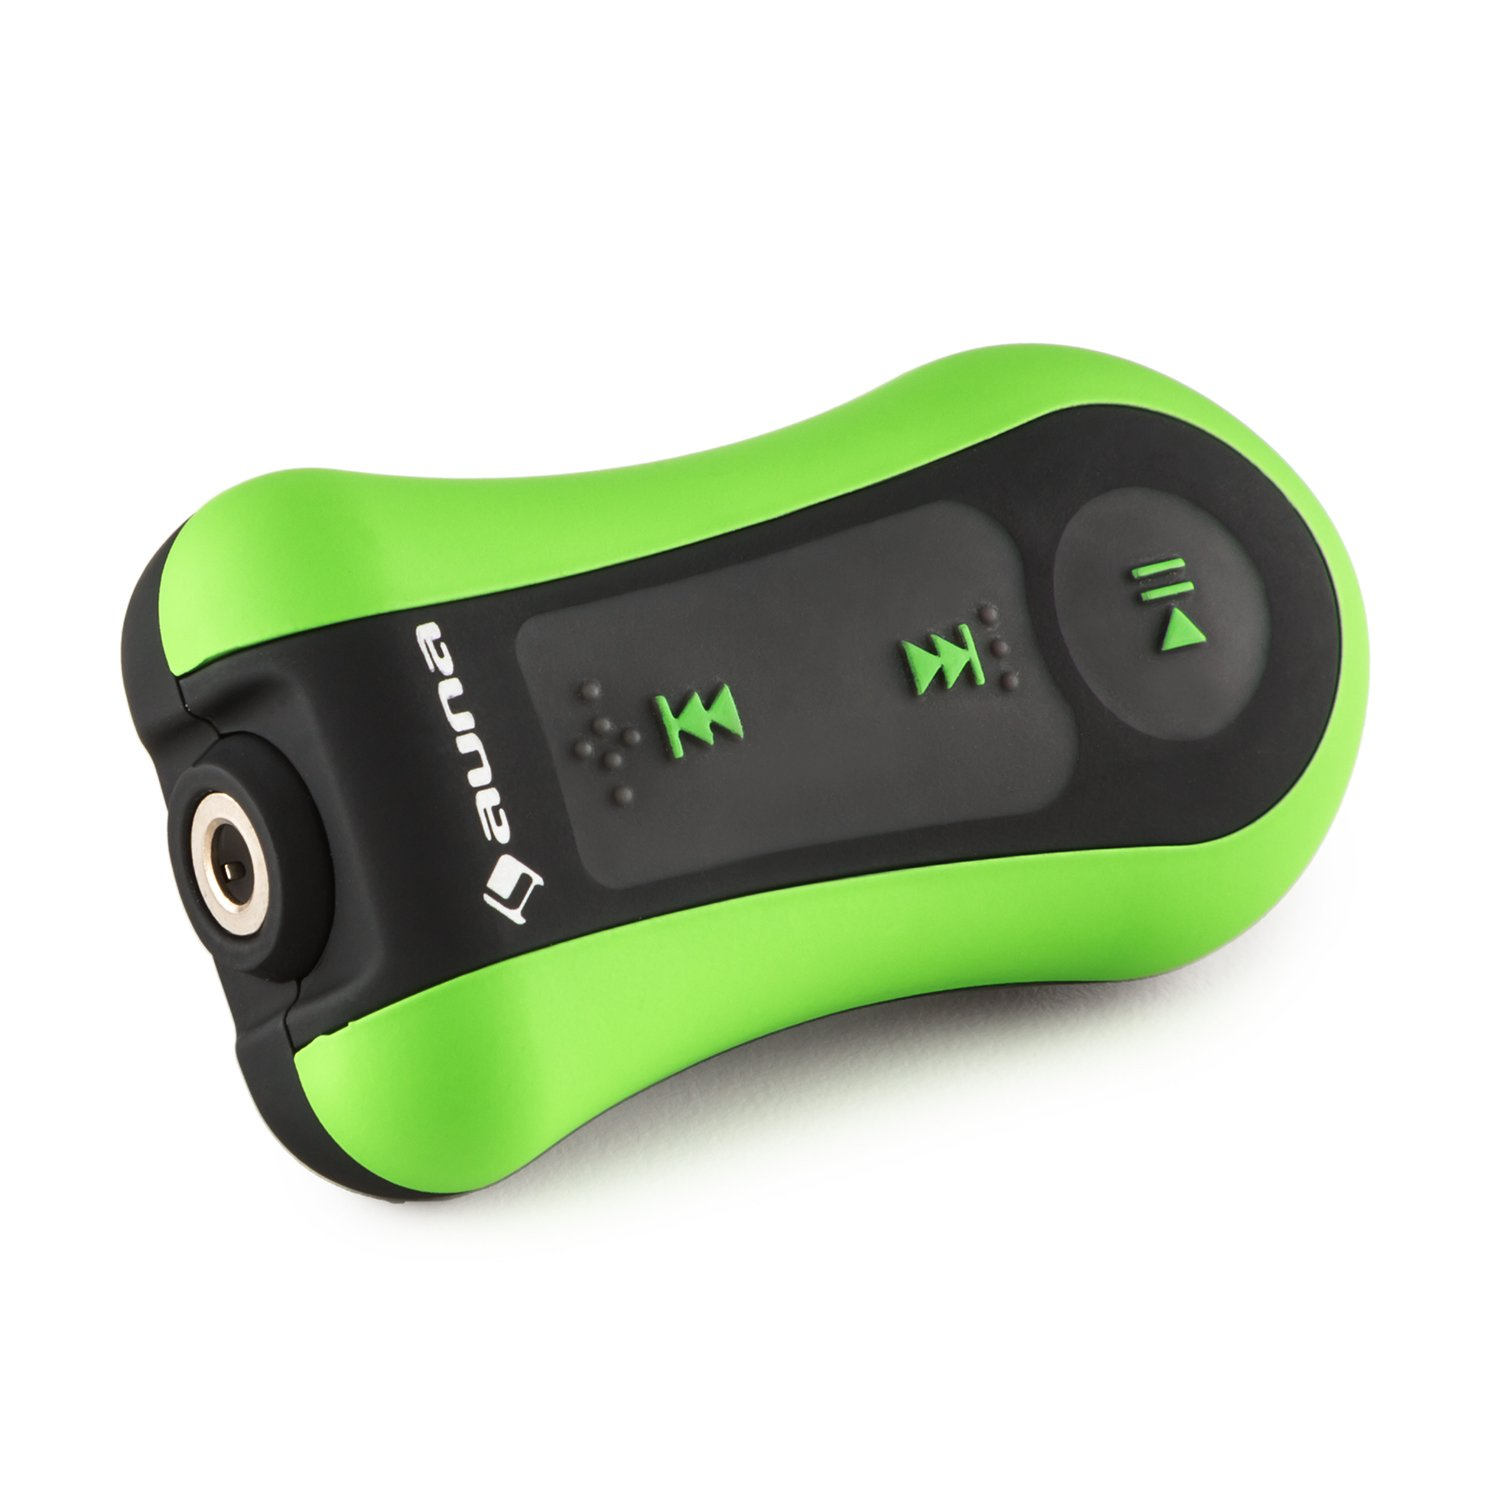 auna Hydro 4 Waterproof MP3 Player • 4 GB Flash Memory • With Clip • Waterproof Headphones with Ear Hooks • Swimming, Surfing, Snowboarding • Underwater Use • Green